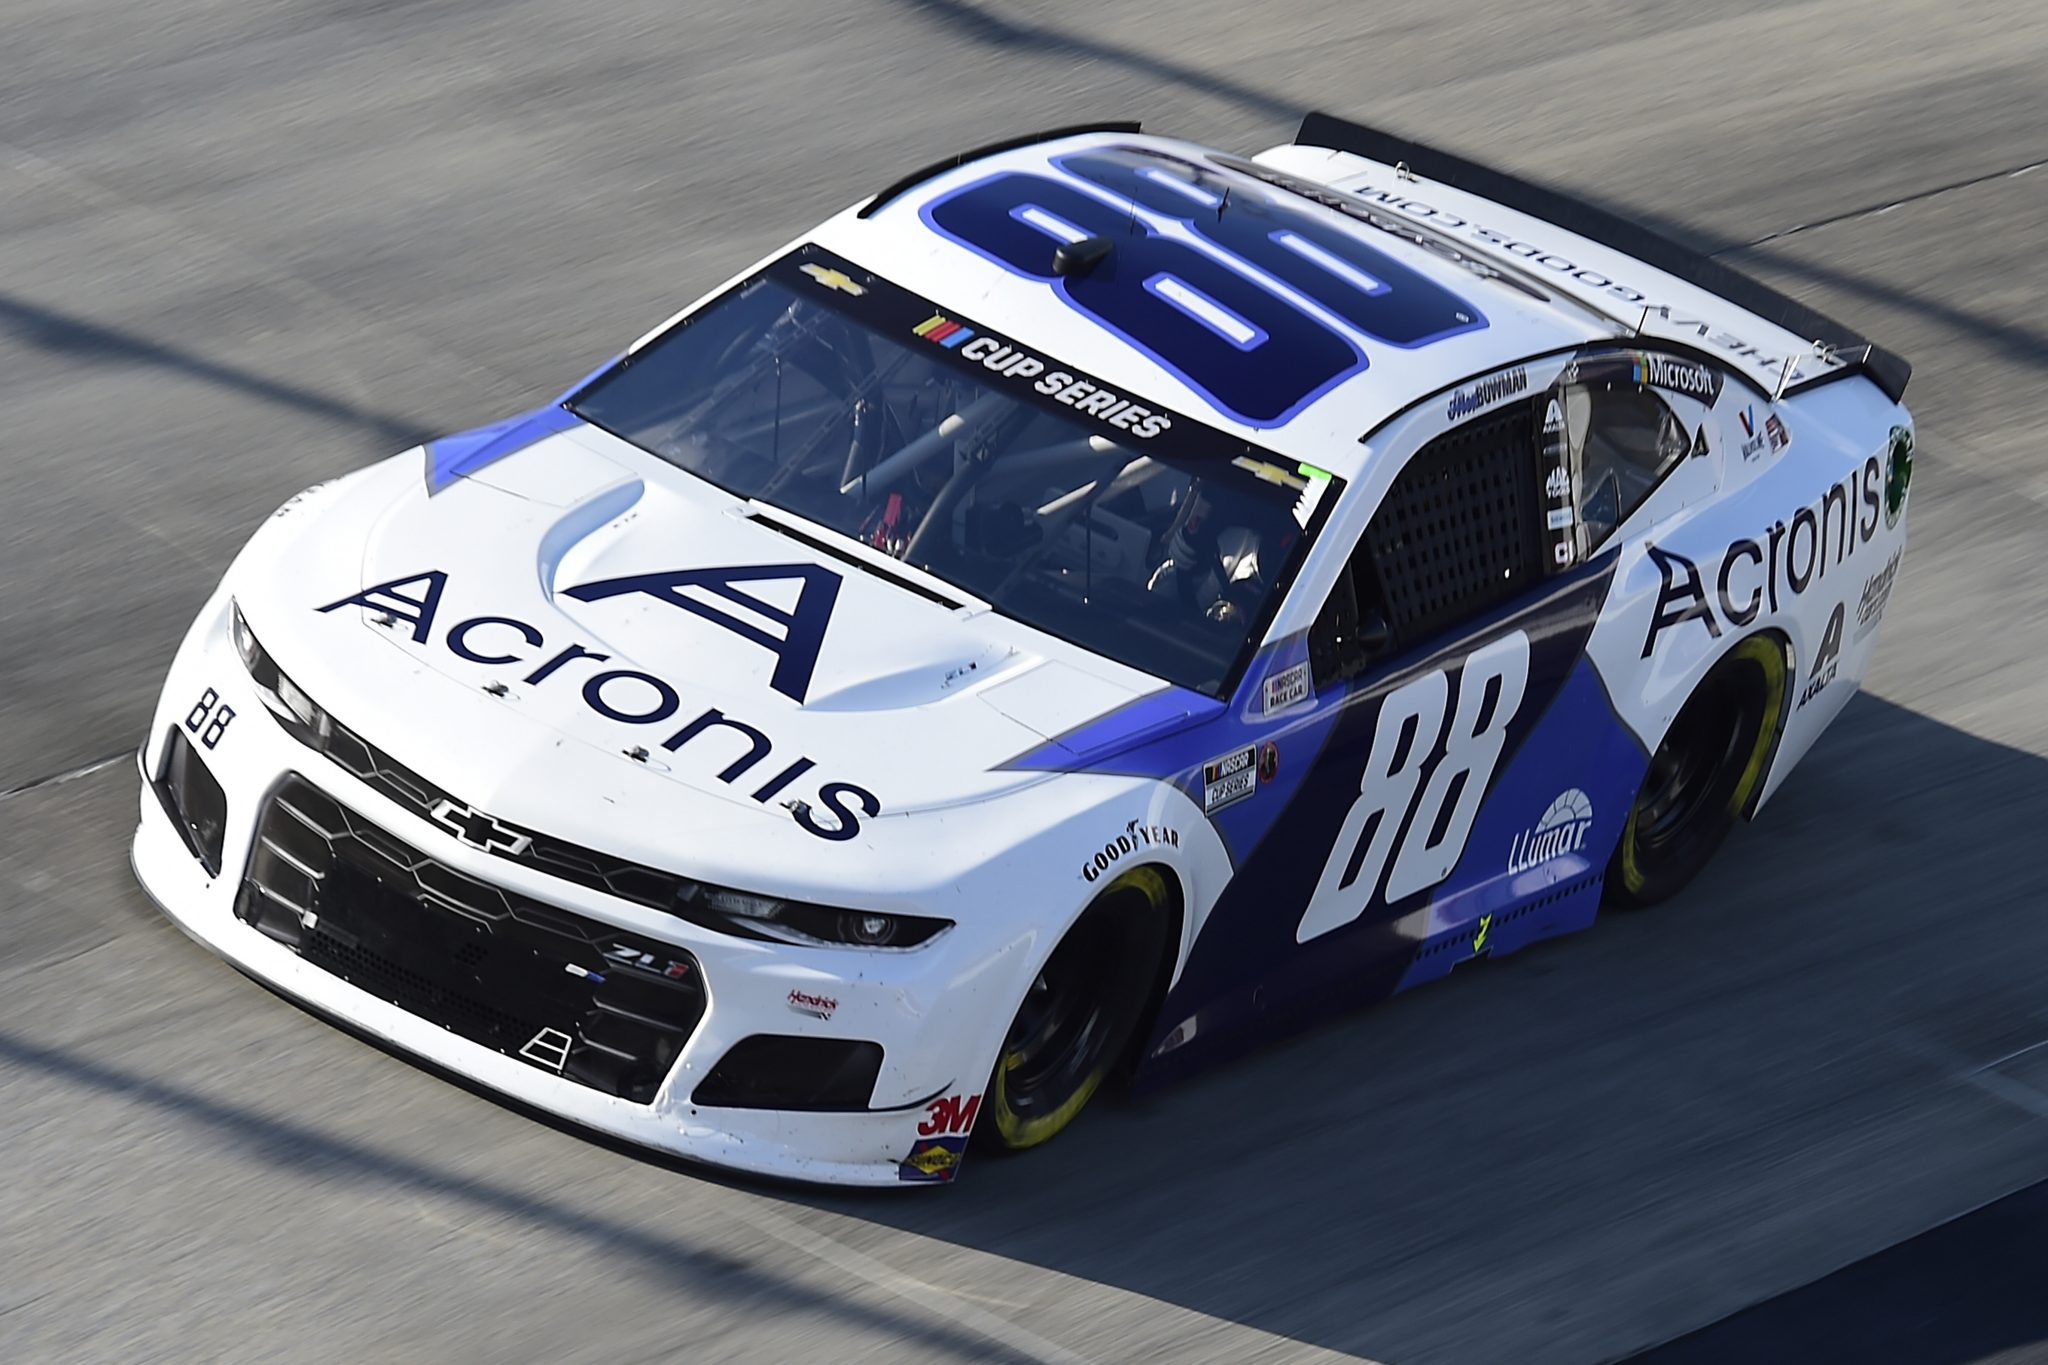 DOVER, DELAWARE - AUGUST 23: Alex Bowman, driver of the #88 Acronis Chevrolet, drives during the NASCAR Cup Series Drydene 311 at Dover International Speedway on August 23, 2020 in Dover, Delaware. (Photo by Jared C. Tilton/Getty Images) | Getty Images